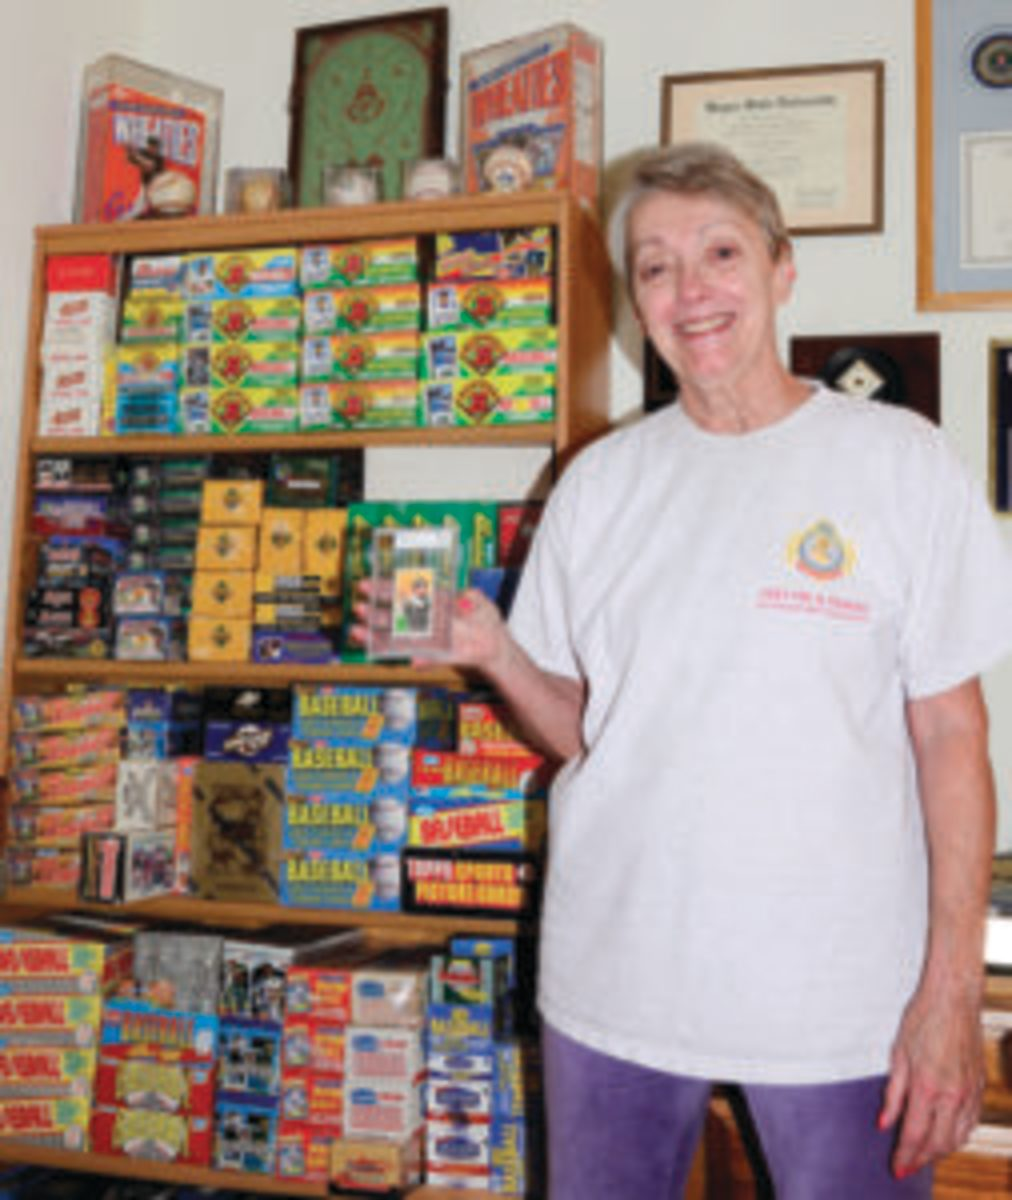 Lea Stoffer-Tatum holds up a T206 Frank Chance card in front of a small portion of her late-husband's sports cards collection. (Photo courtesy Lea Stoffer-Tatum)